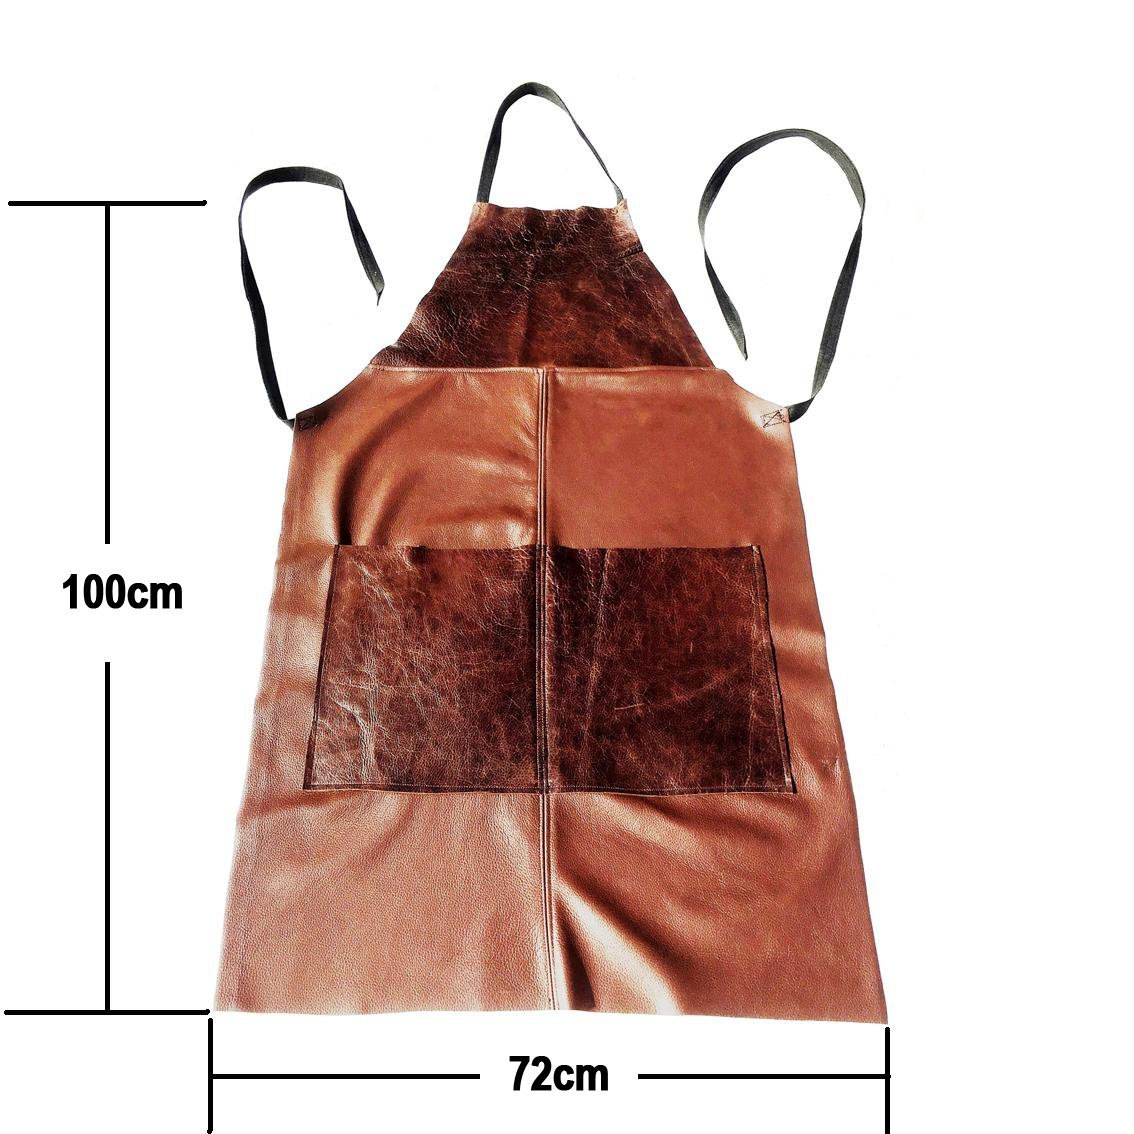 100cm x 72cm Large Full Length Workwear Apron in Patchwork Brown Leather